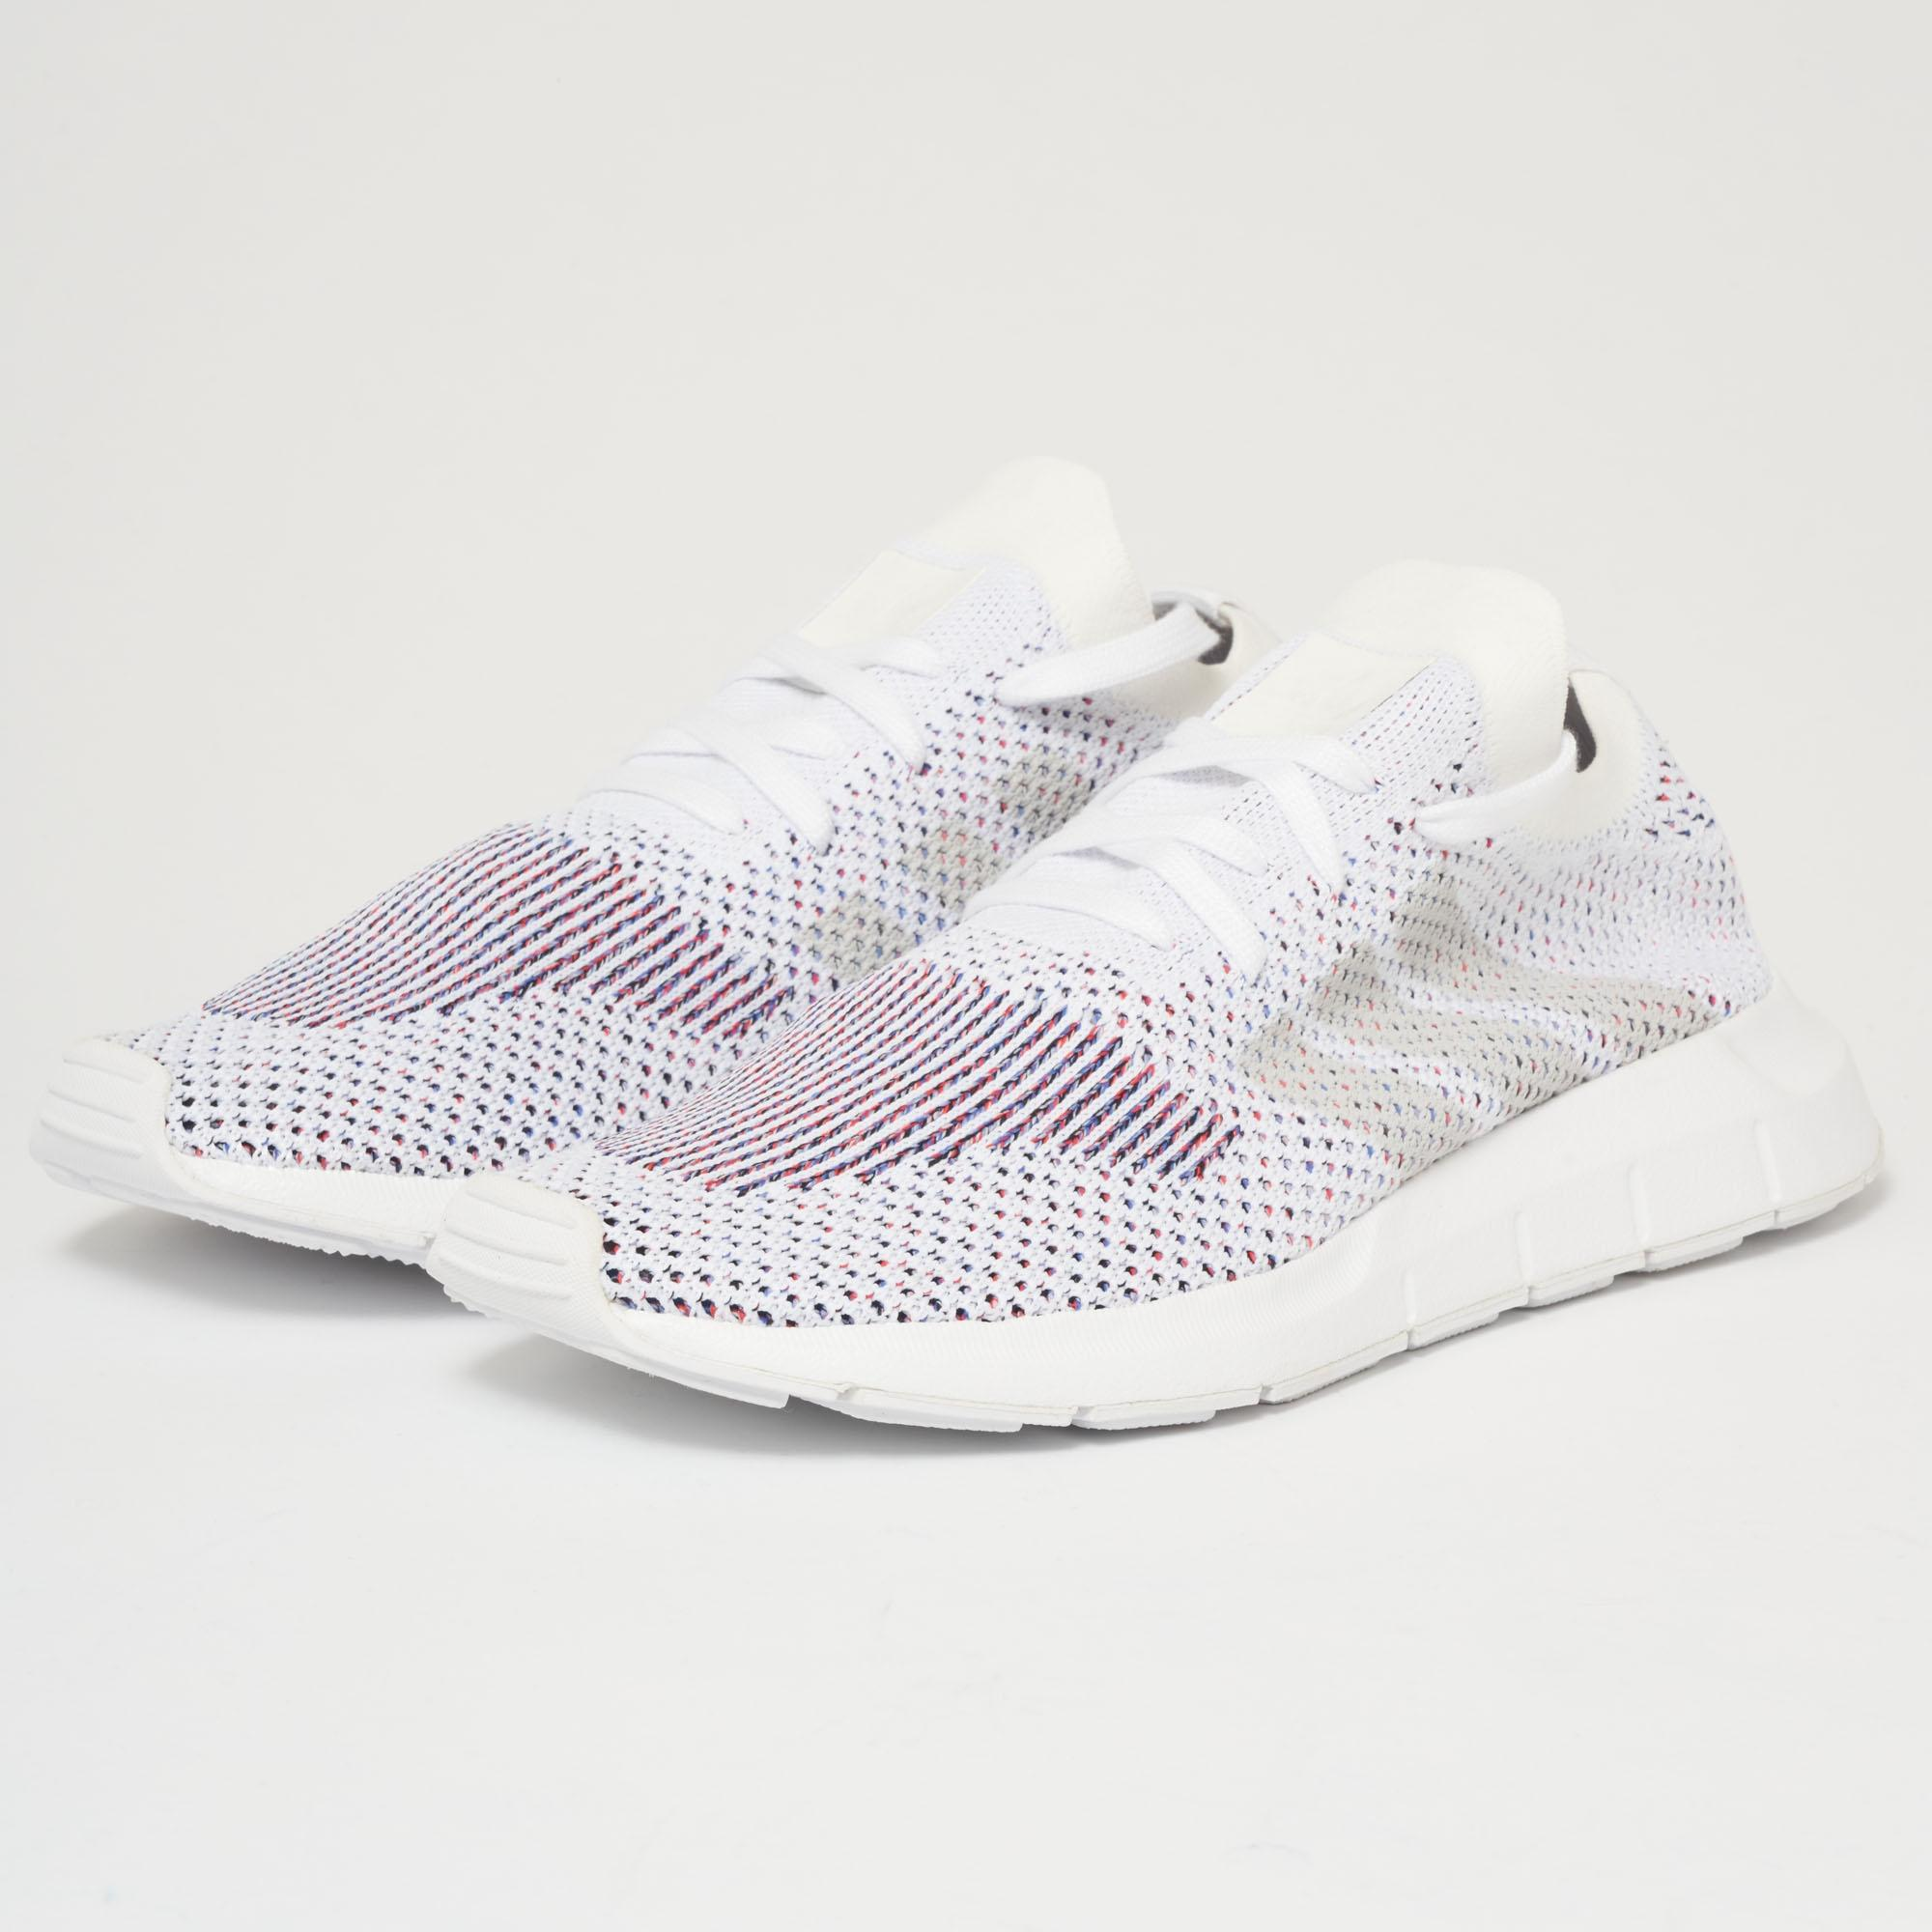 ... hot products deac6 be4f6 Lyst - Adidas Originals Swift Run Pk - Ftw  White Grey One ... ad64290fb